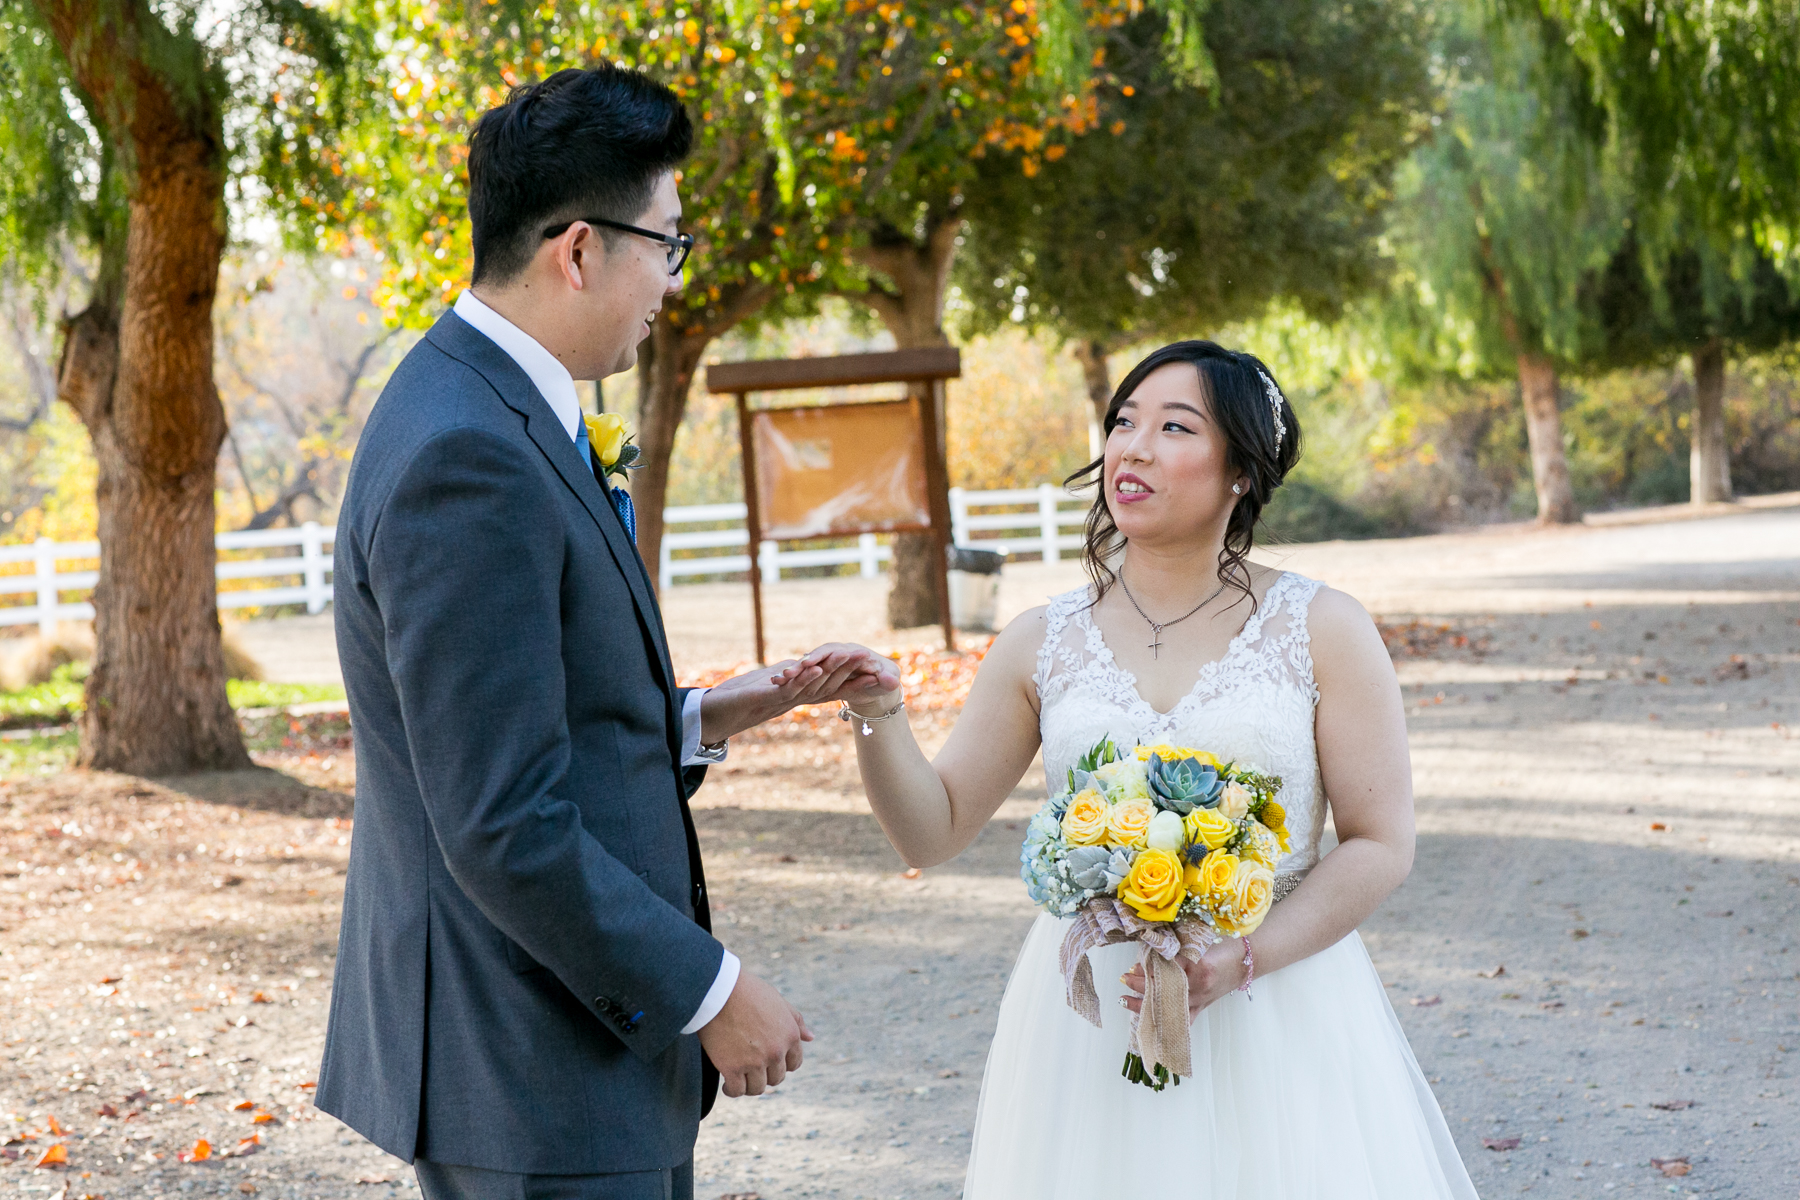 bride and groom see each other during first look at wedding at chino hills photographer